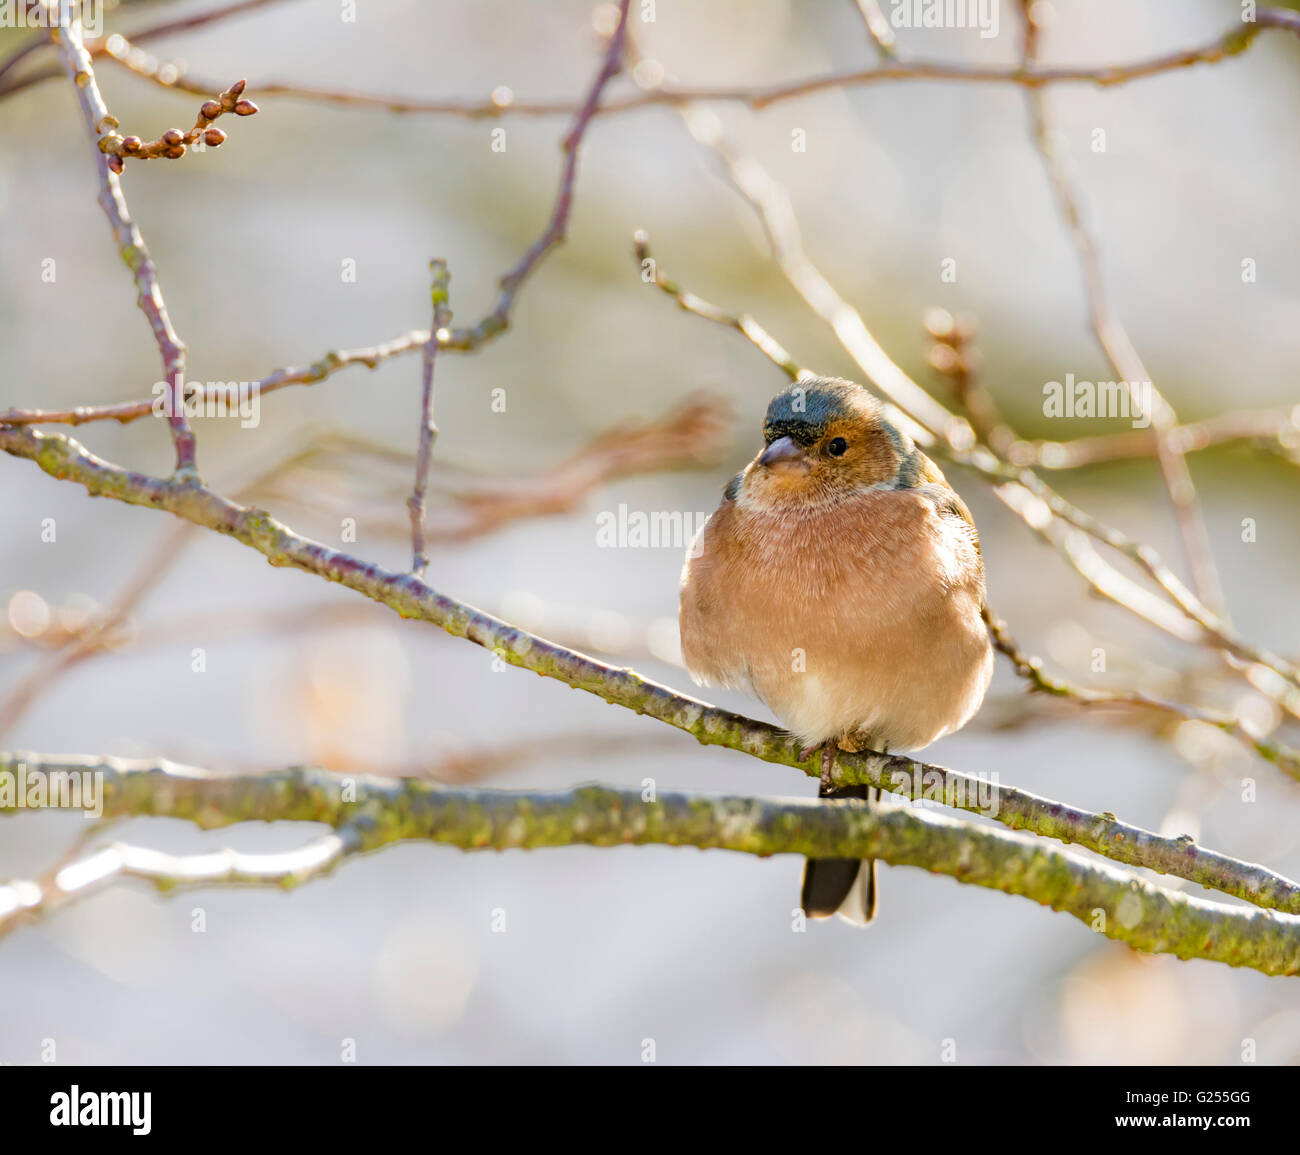 Common chaffinch (Fringilla coelebs) sitting on the twig of a tree - Stock Image